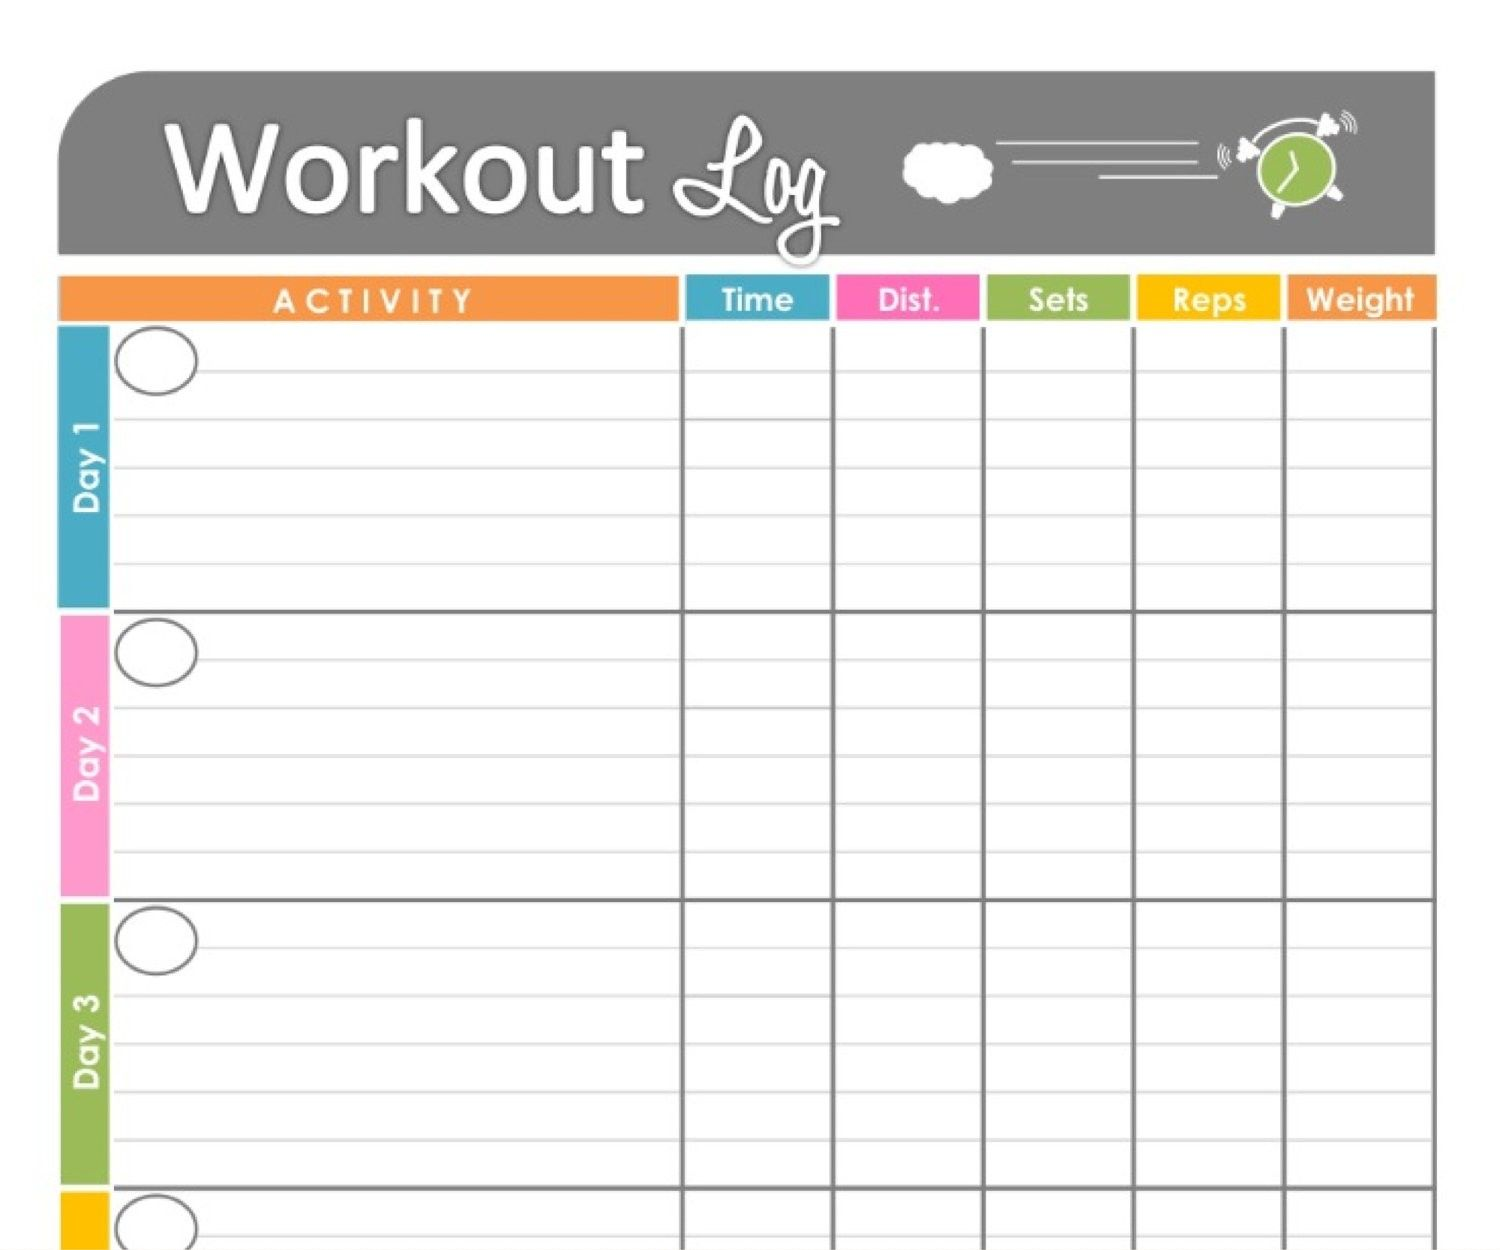 personal trainer workout template - free printable workout schedule blank calendar printing